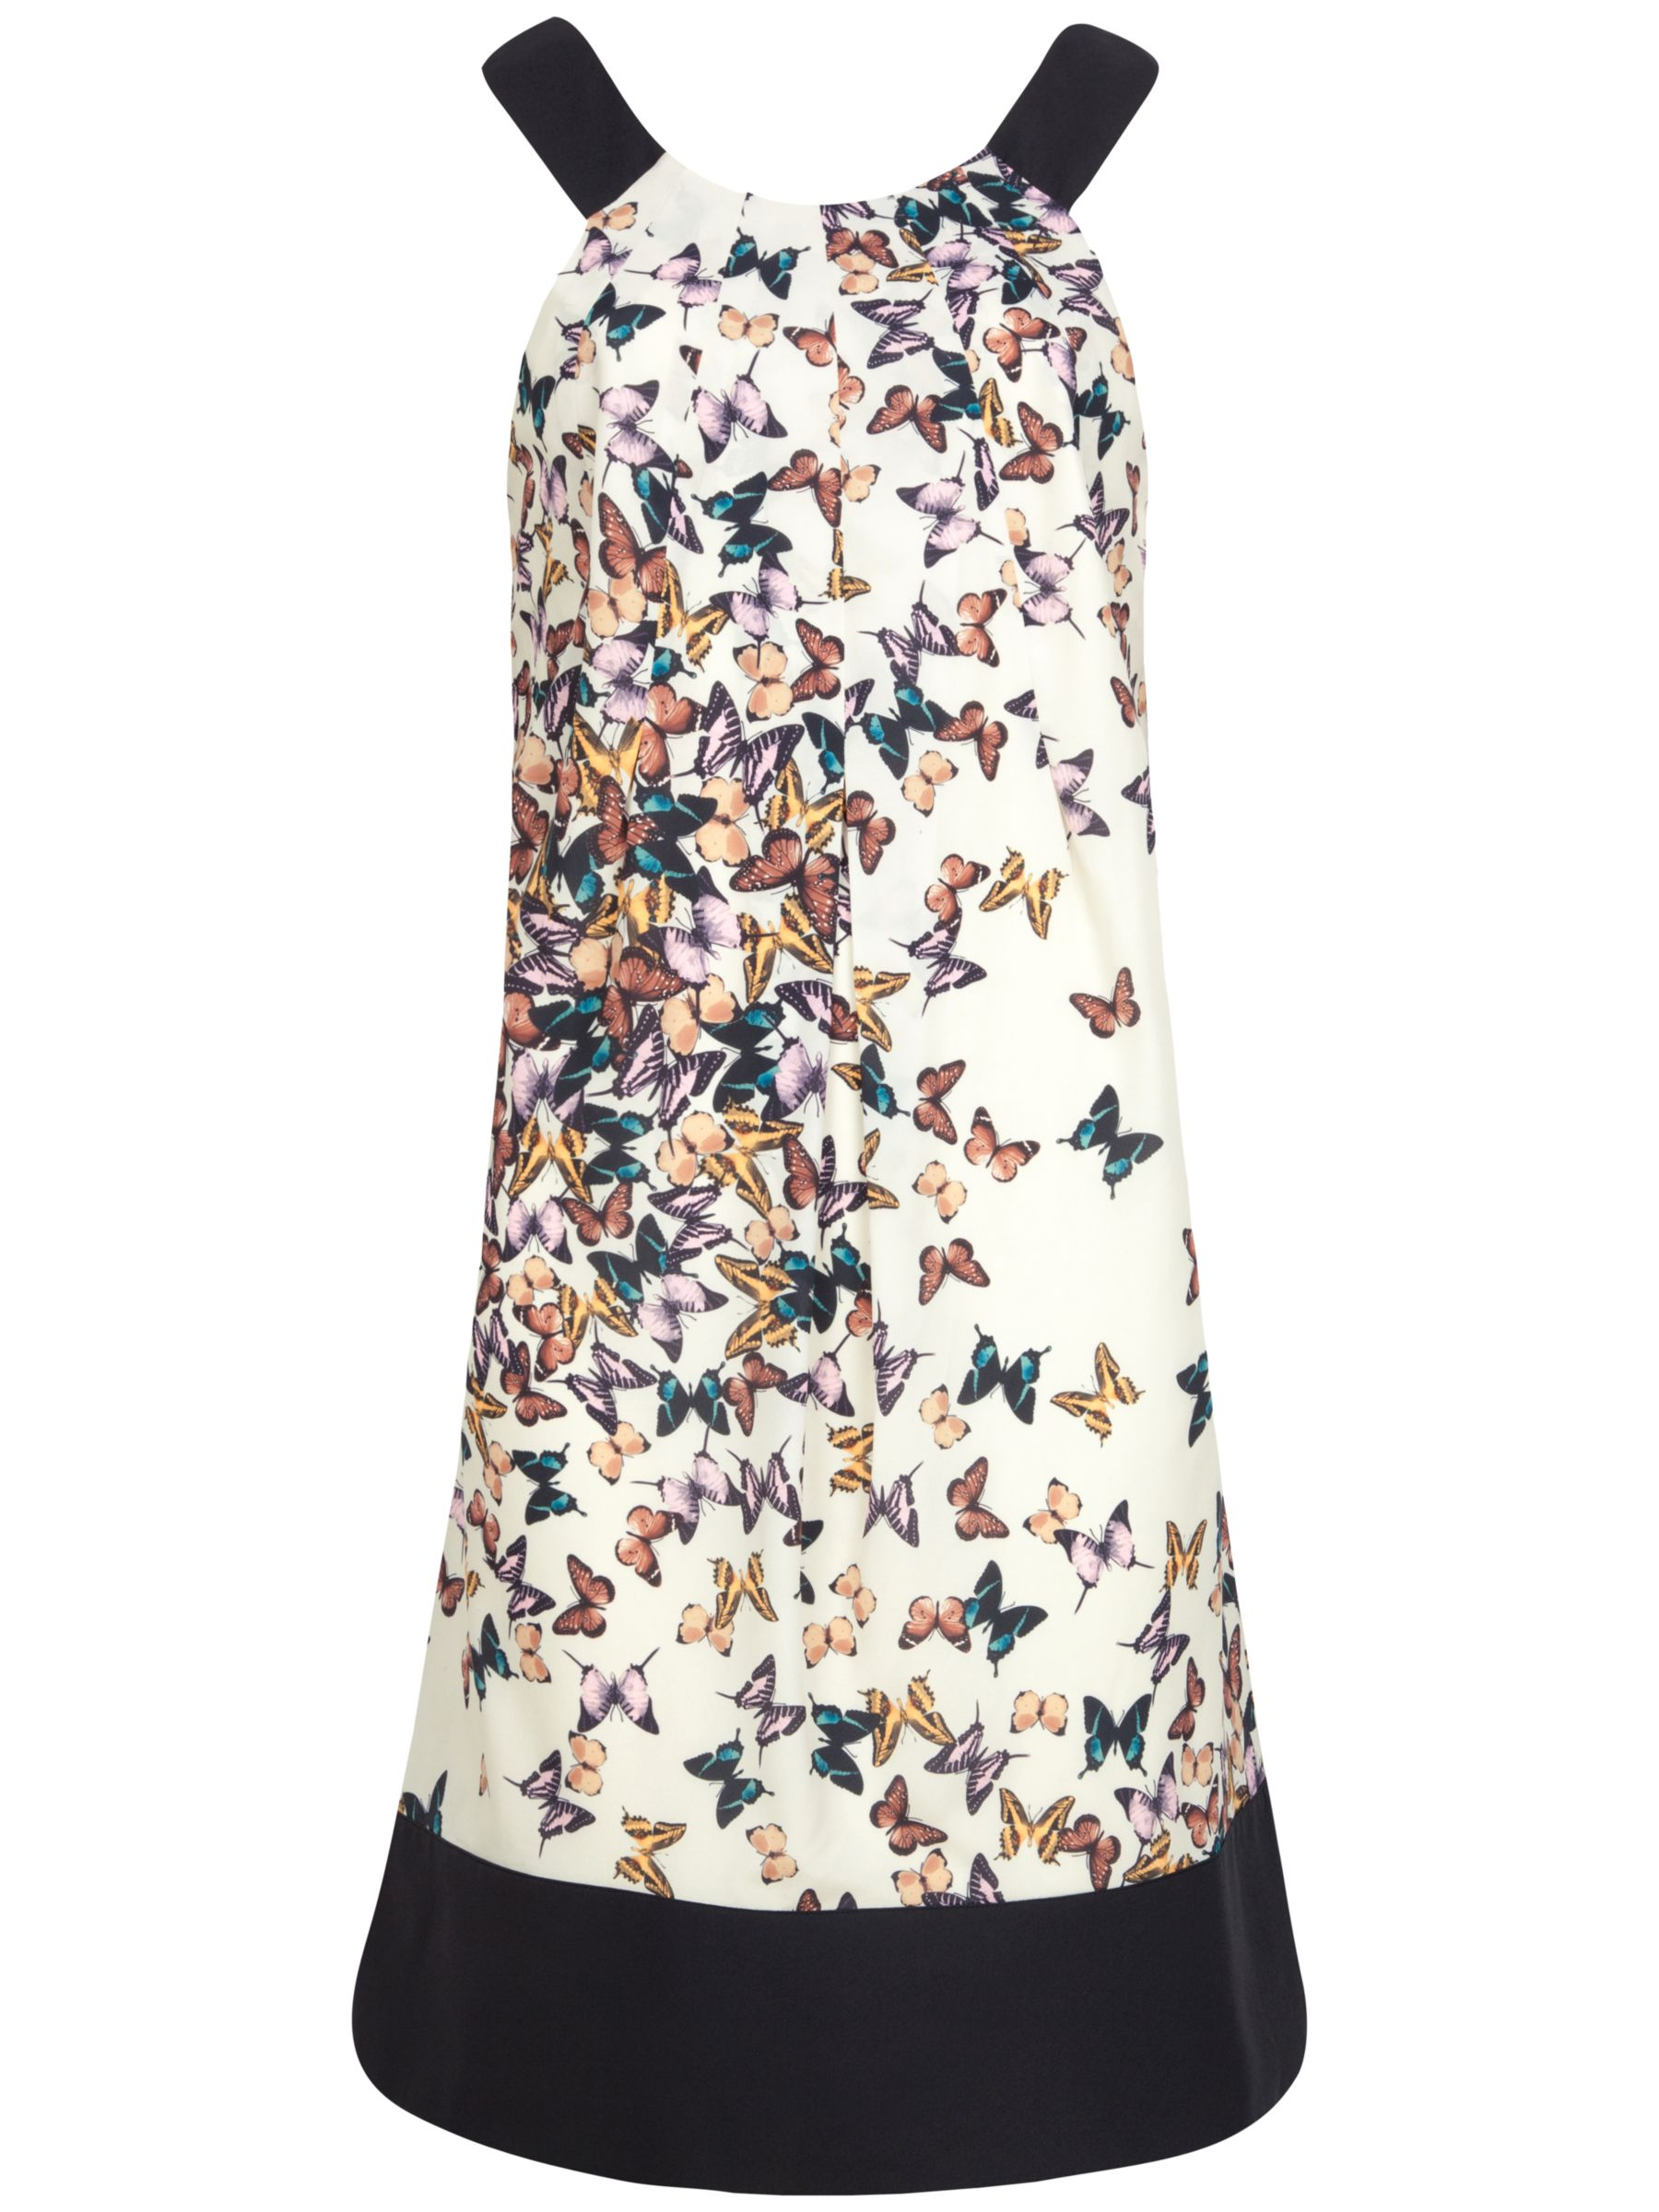 ted baker simy strappy butterfly cluster dress cream, ted, baker, simy, strappy, butterfly, cluster, dress, cream, ted baker, 5|4|3|2|1|0, women, womens dresses, gifts, wedding, wedding clothing, female guests, fashion magazine, womenswear, men, brands l-z, 1901341